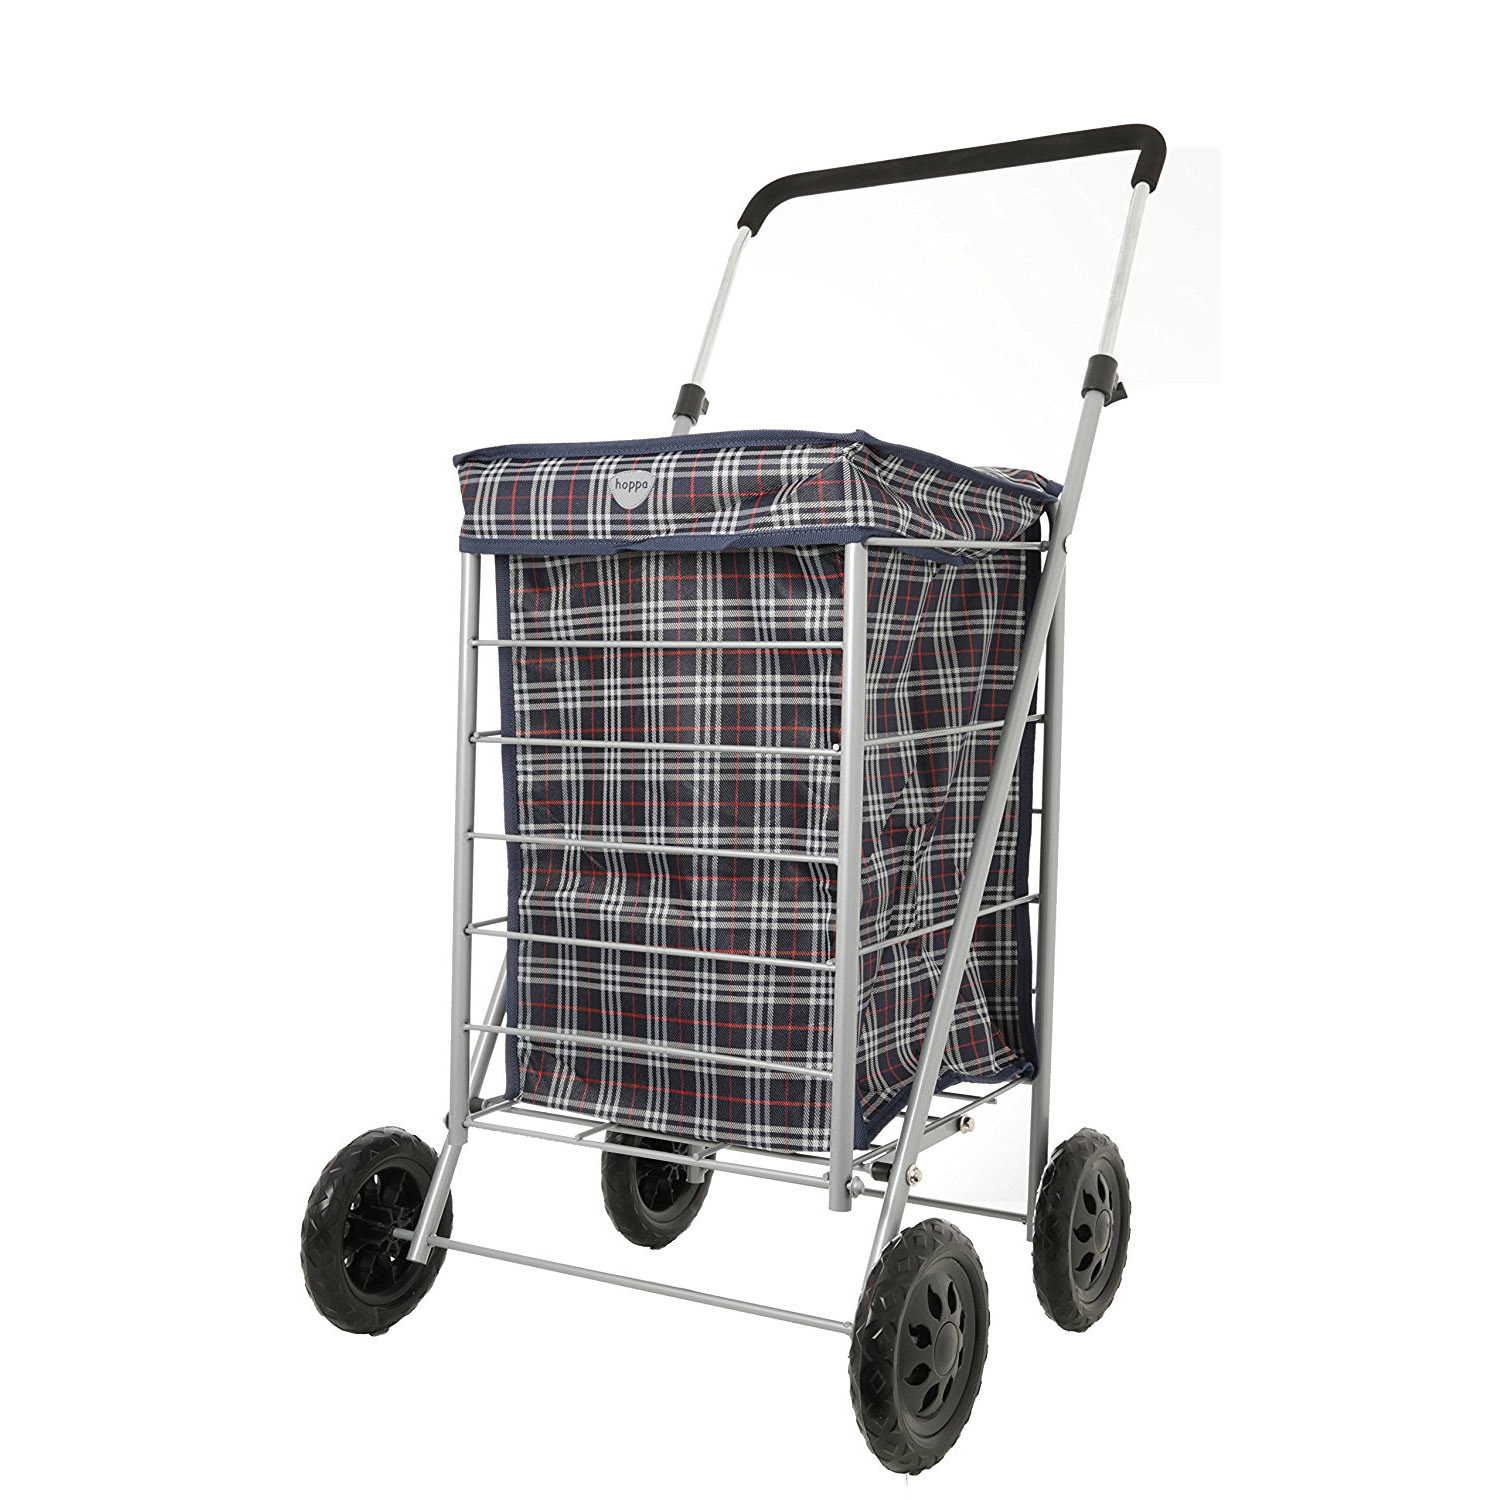 Hoppa 4 Wheel Folding Shopping Trolley on Wheels Tubular Steel Petit